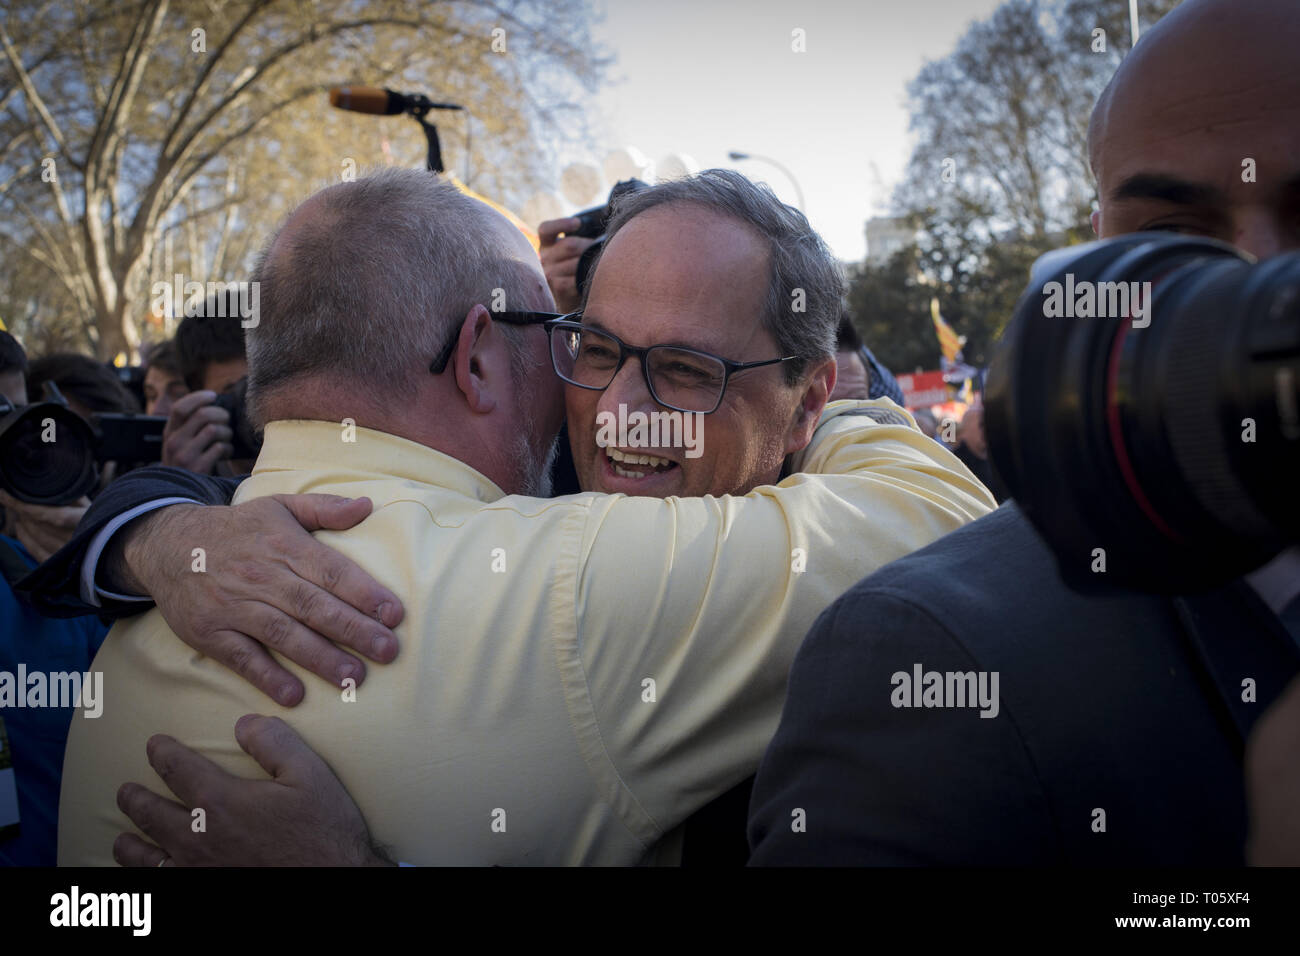 Madrid, Spain. 16th Mar, 2019. Catalonia's region president QUIM TORRA in Madrid in support of imprisoned separatist leaders which trial is underway. Thousands Catalans have gone to Spanish capital to march under the slogan 'Self-determination is not a crime'. Past 12 February in Spain's highest court began the trial on twelve Catalan leaders with charges relating to an October 2017 independence referendum that was considered illegal by the Spanish government. Credit: Jordi Boixareu/ZUMA Wire/Alamy Live News Stock Photo